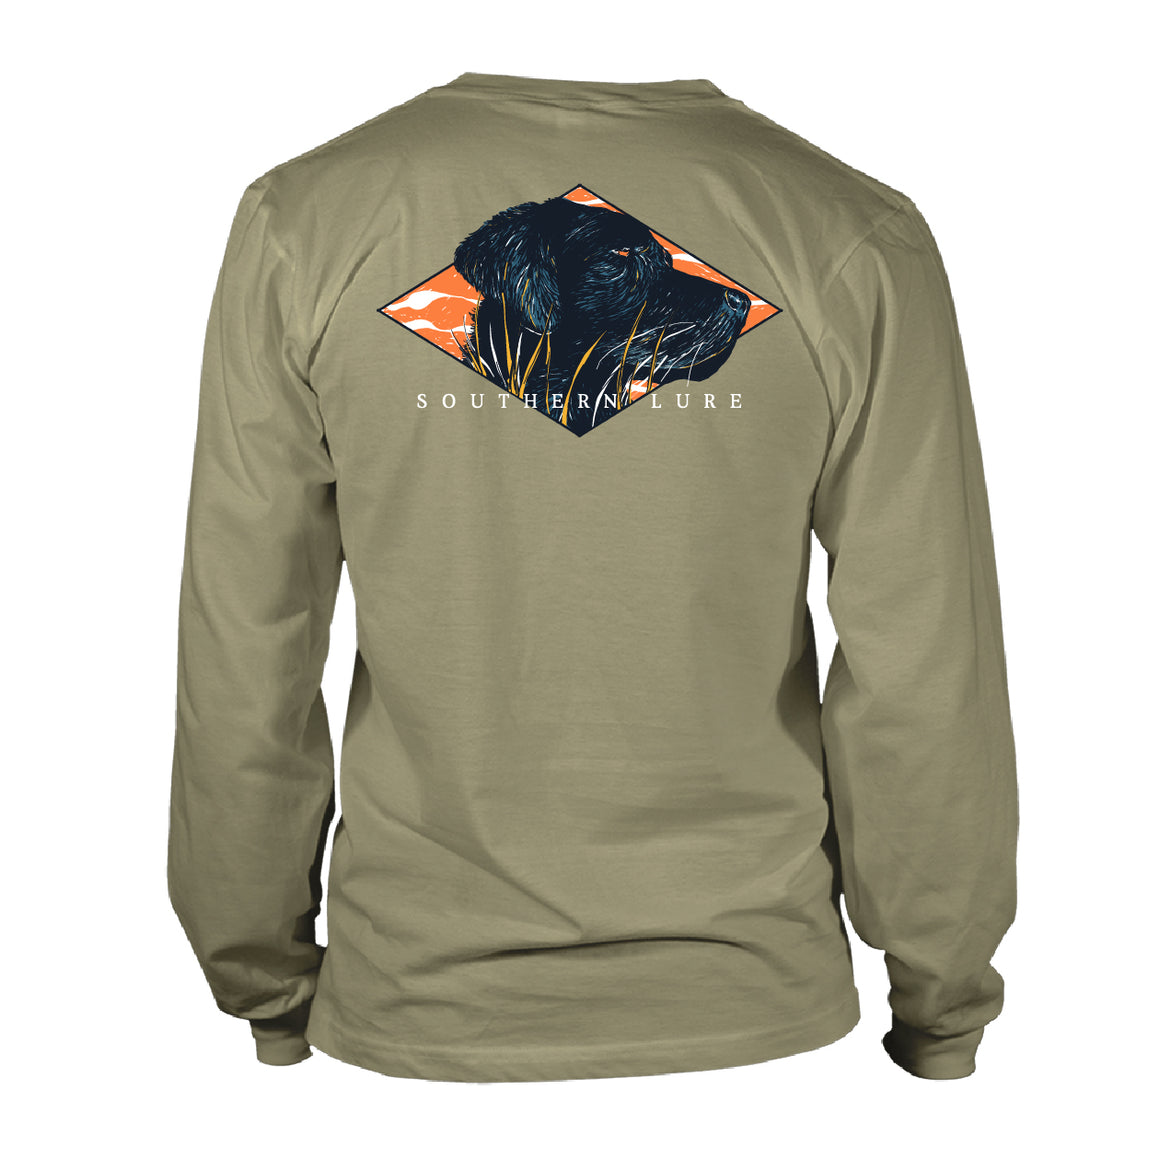 Boy's Youth & Toddler Long Sleeve Cotton Tee - Black Lab Hunt - Khaki